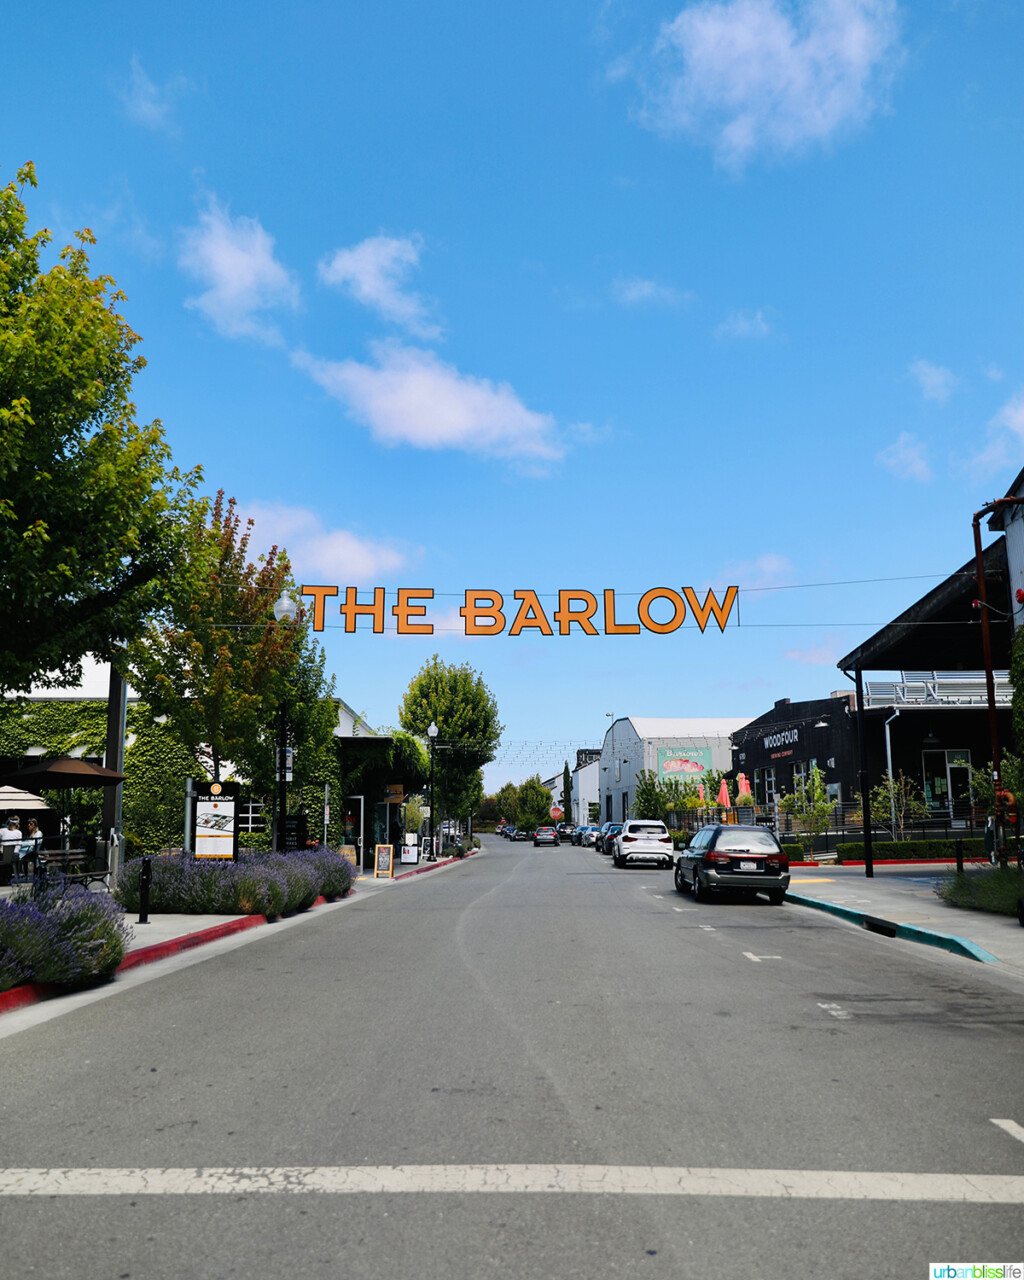 The Barlow sign on street